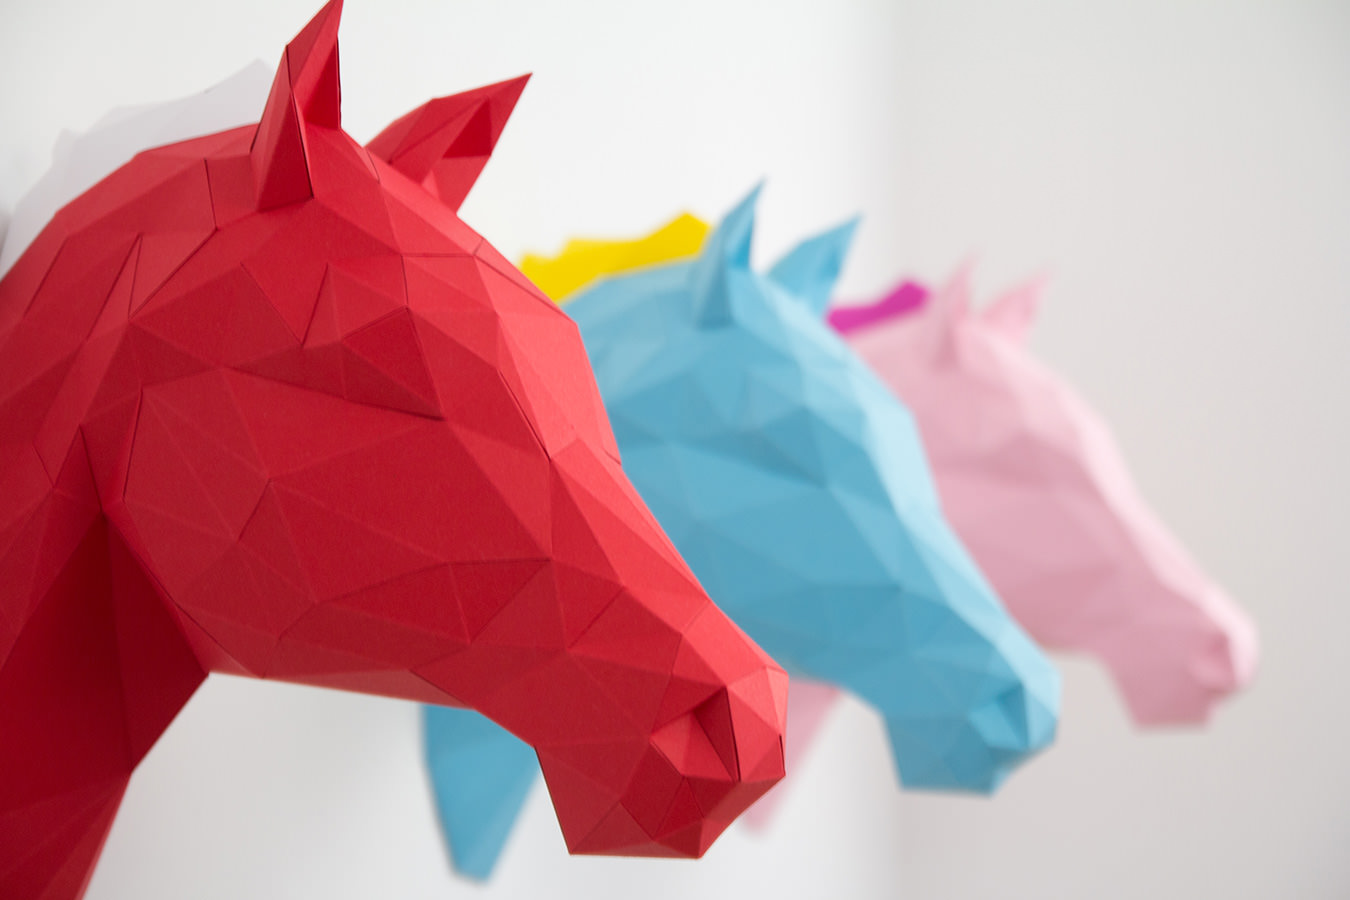 Makers: PaperShape